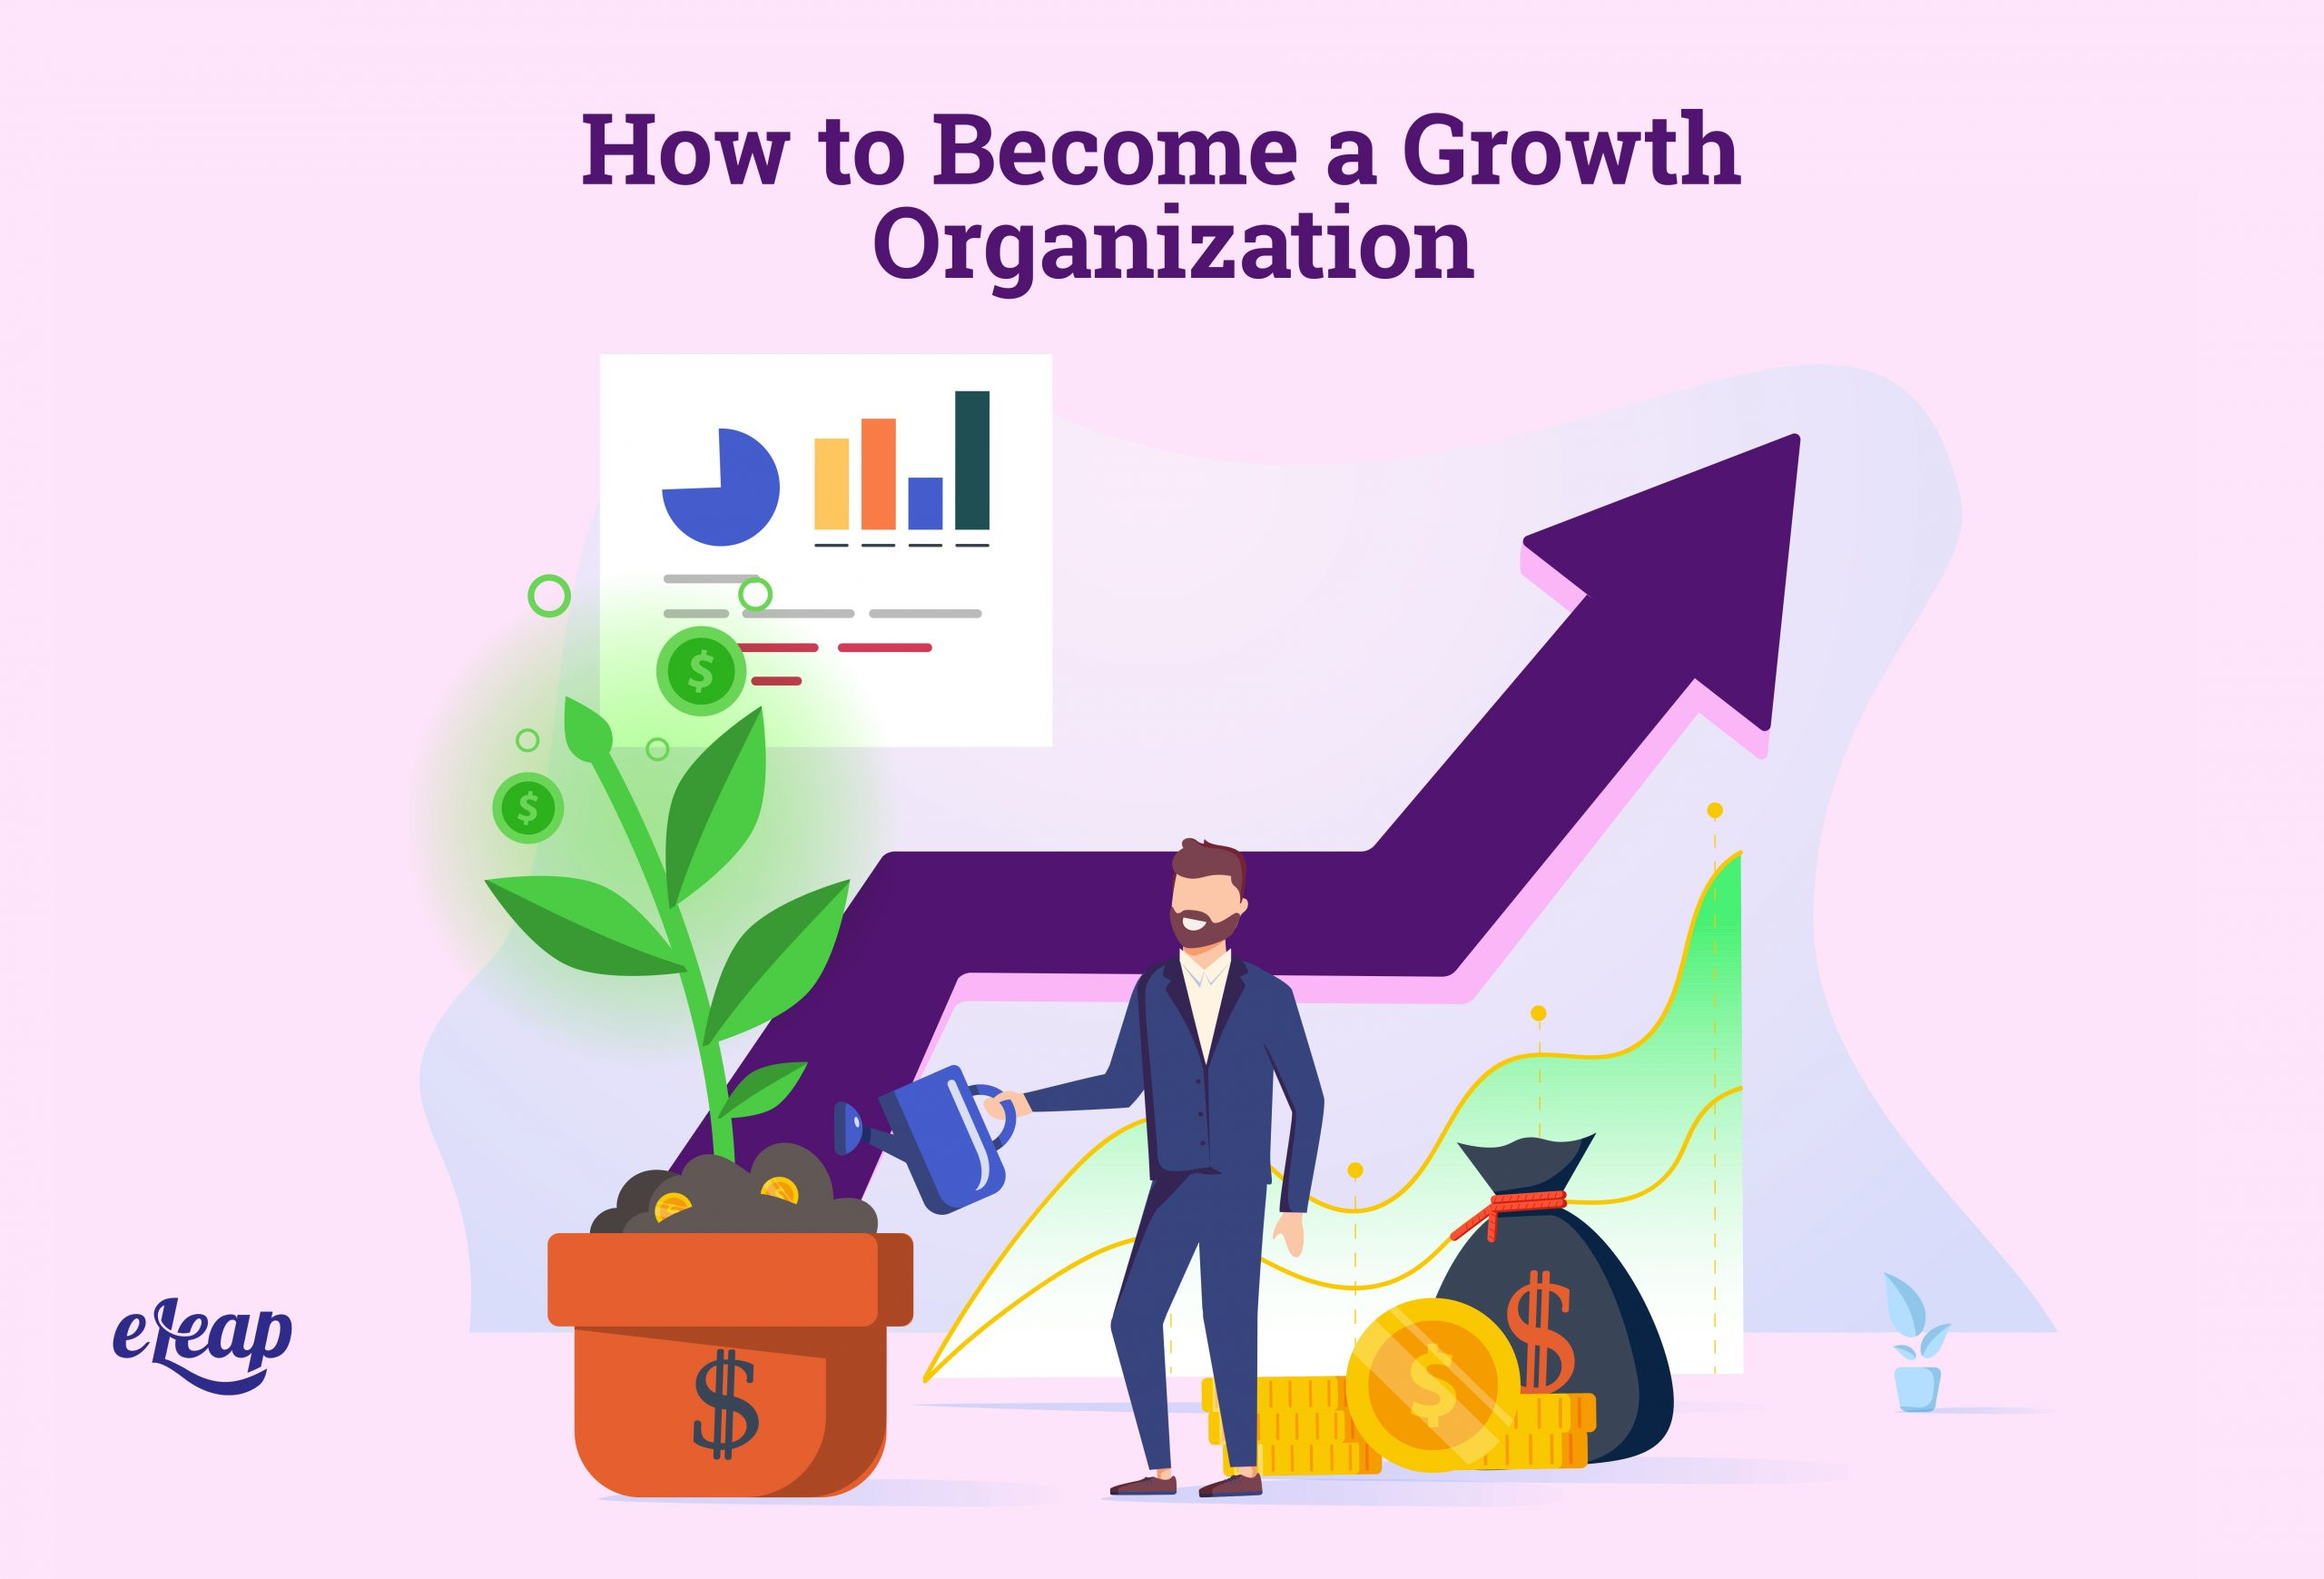 How to Become a Growth Organization